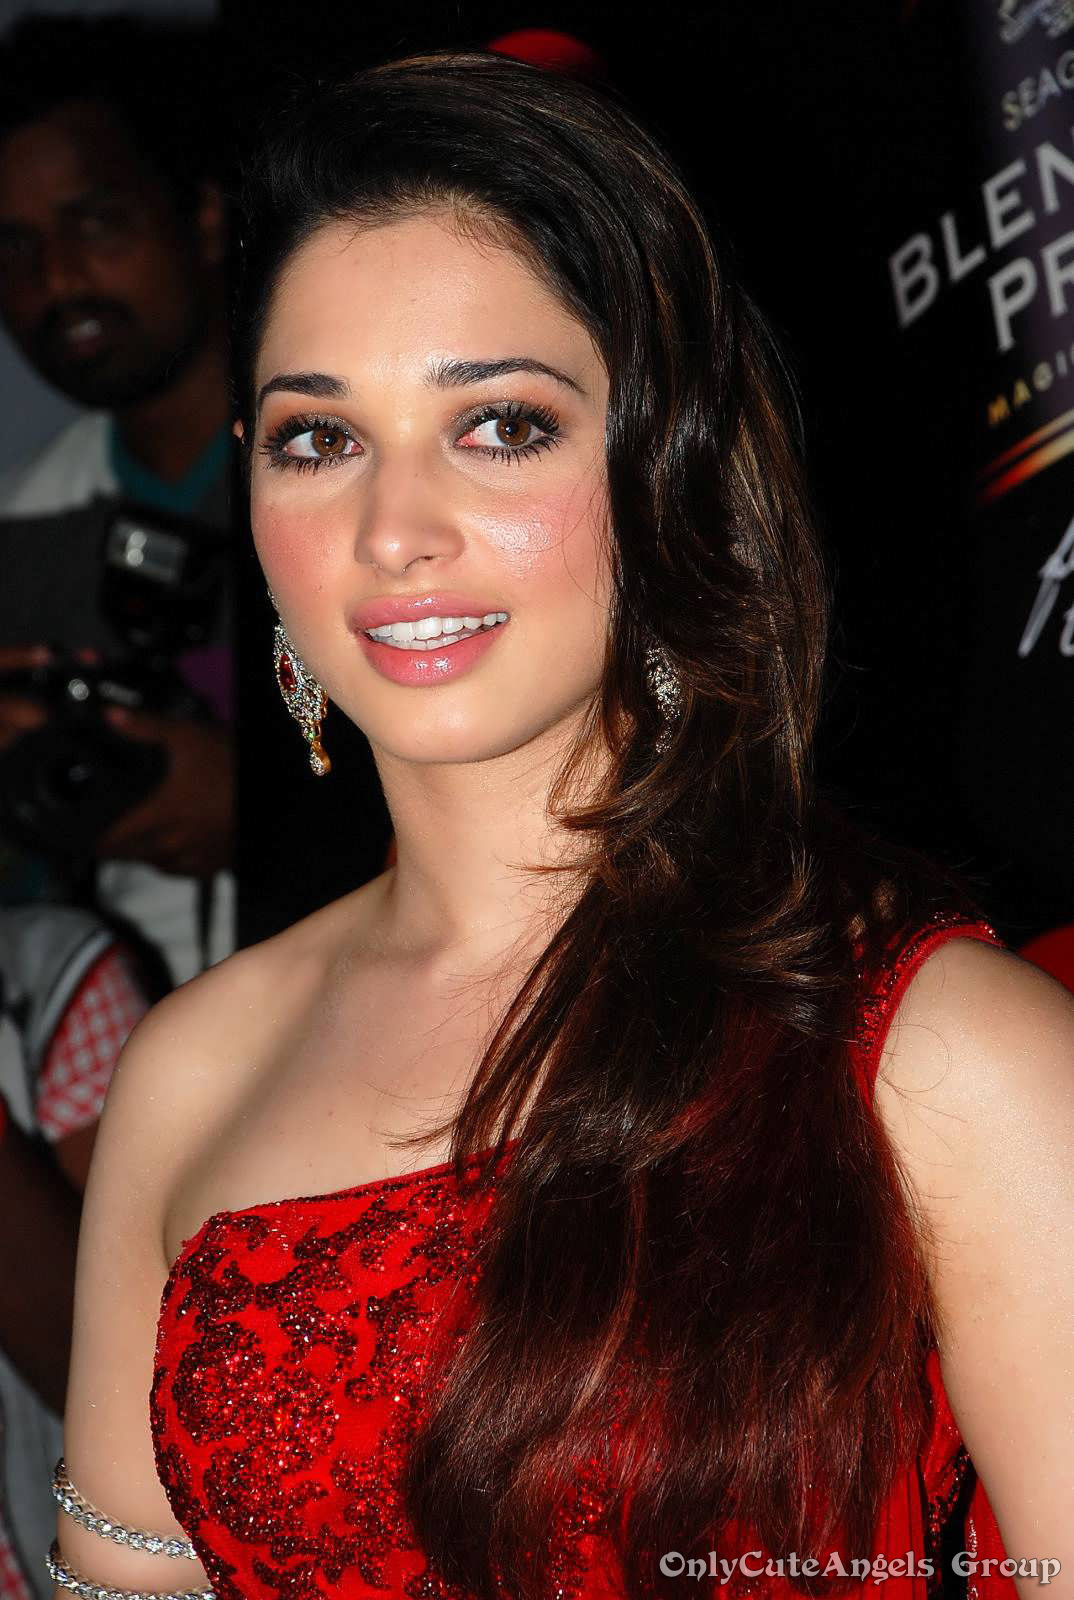 Beautiful Wallpapers: Tamanna Wallpapers HD